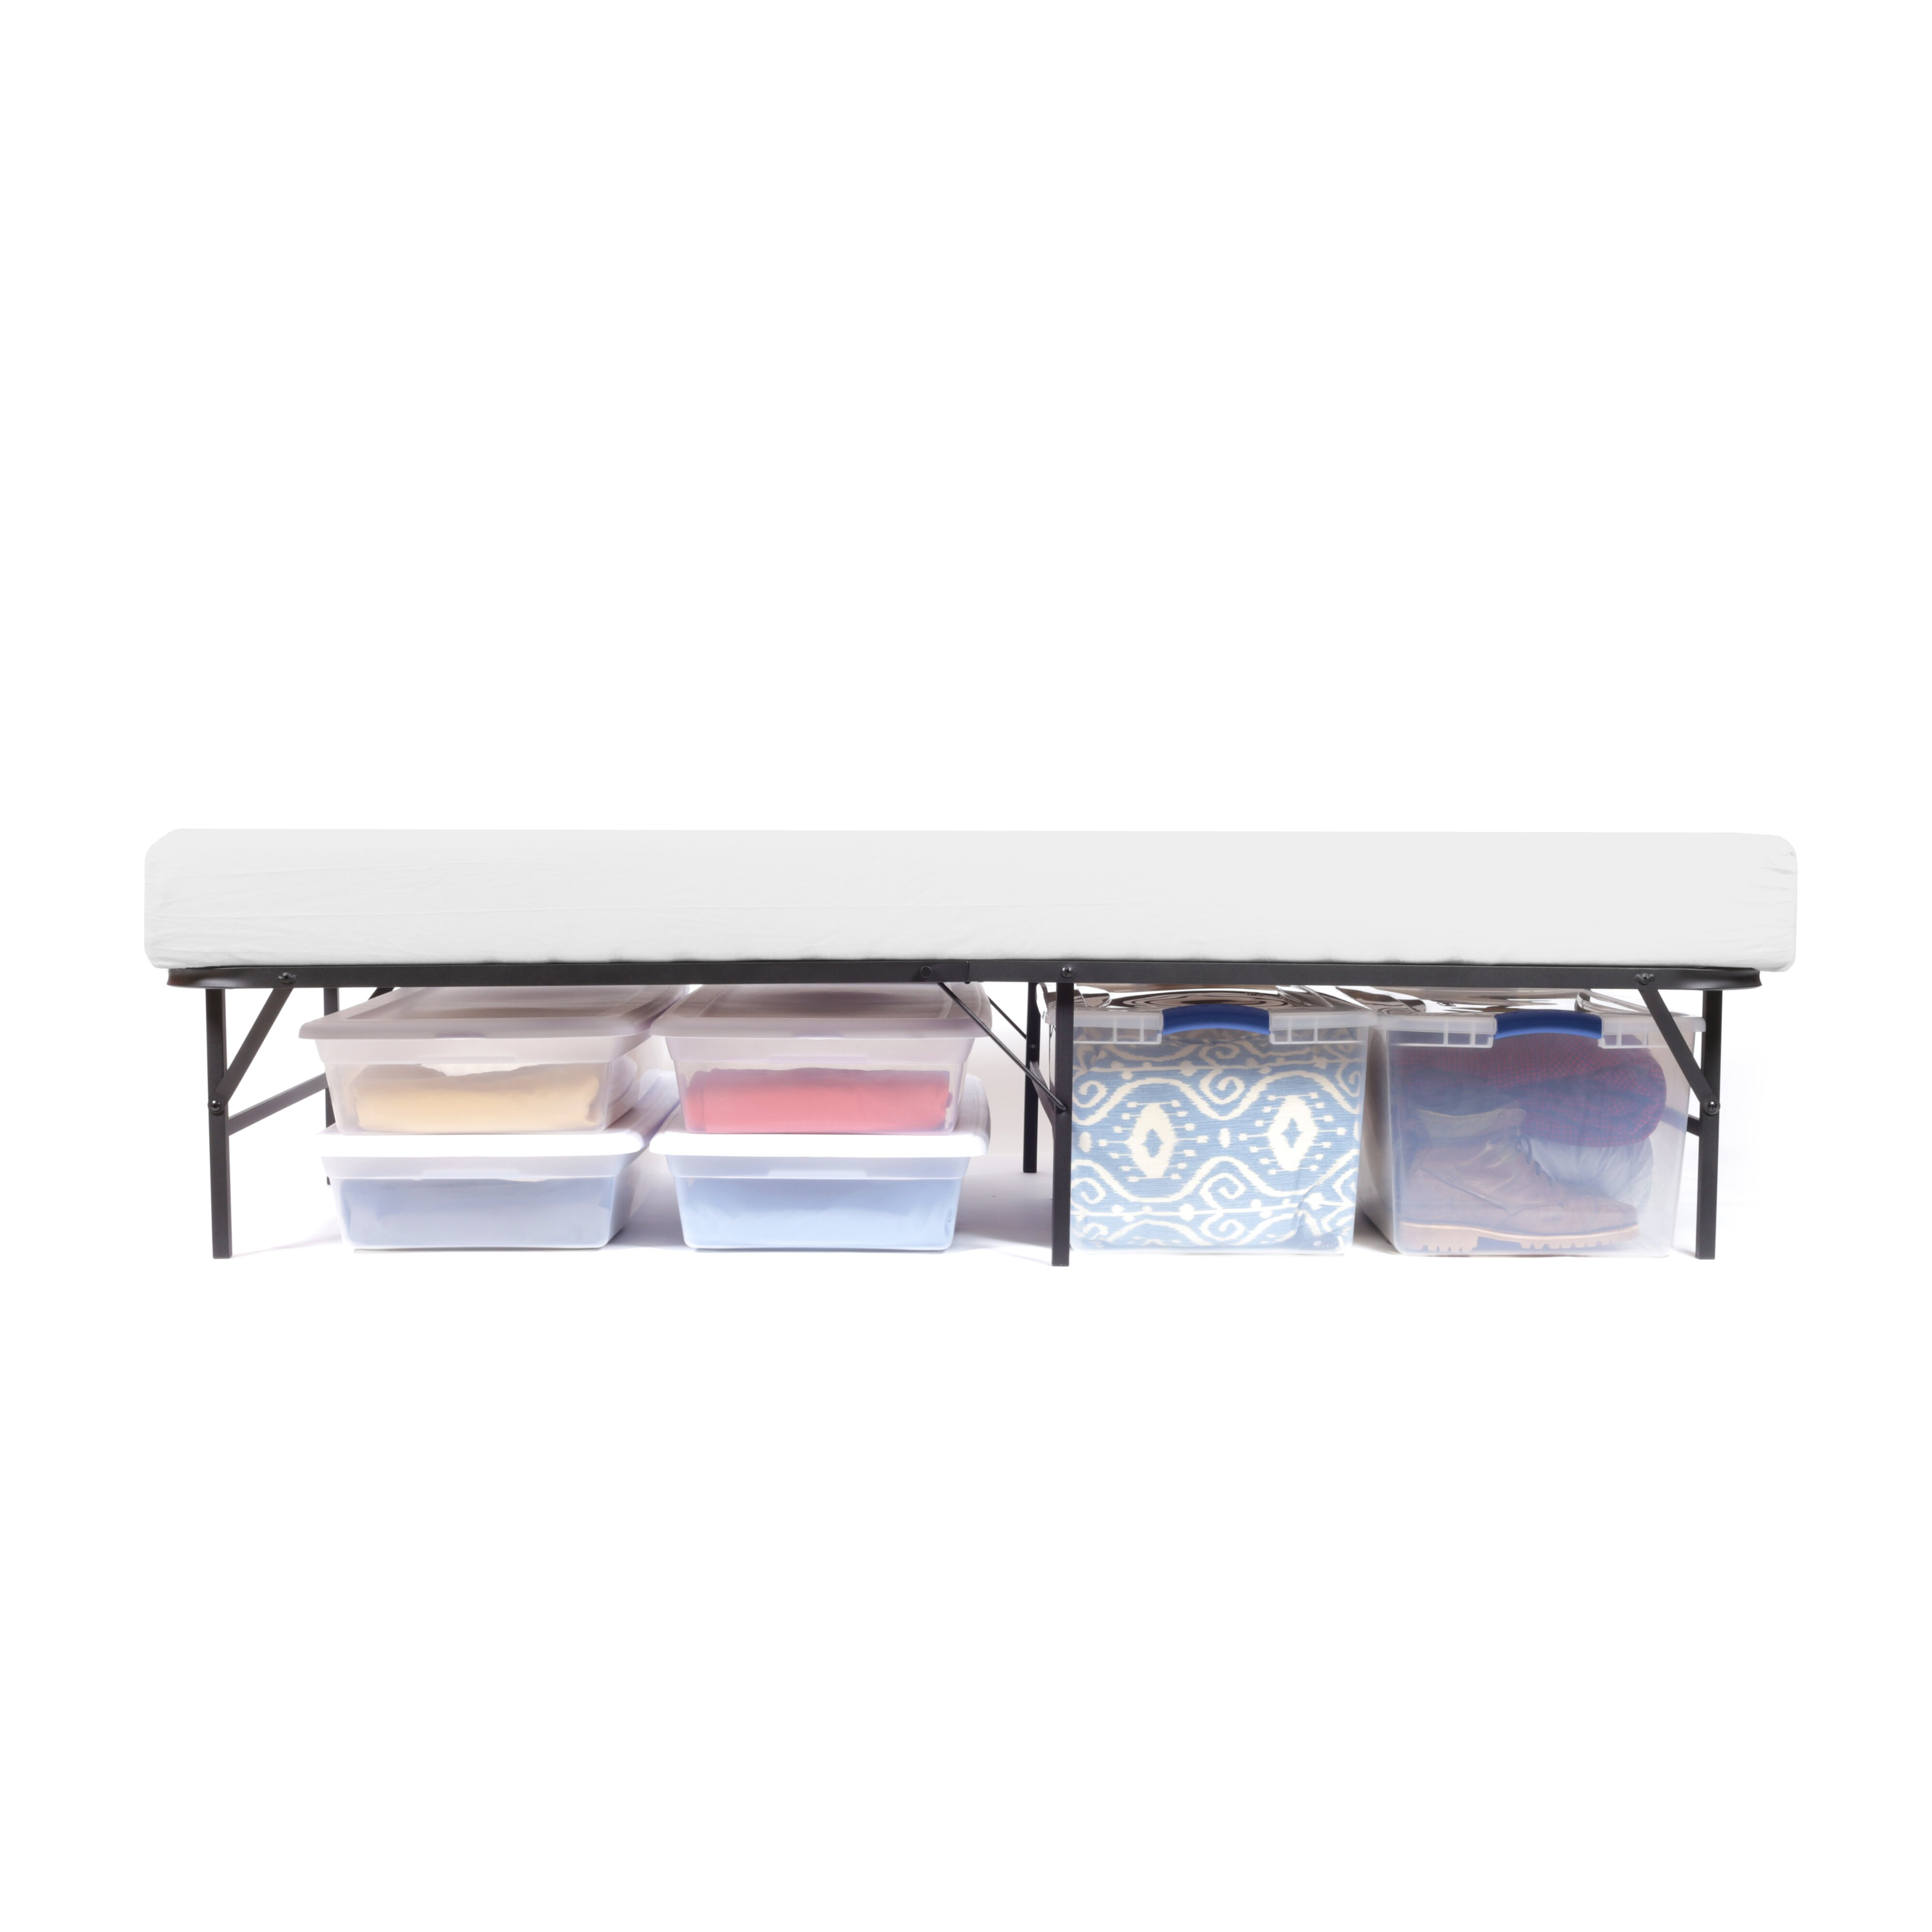 Pragma Bed Frame King.Pragma Simple Bed Base Bi Fold Bed Frame ...